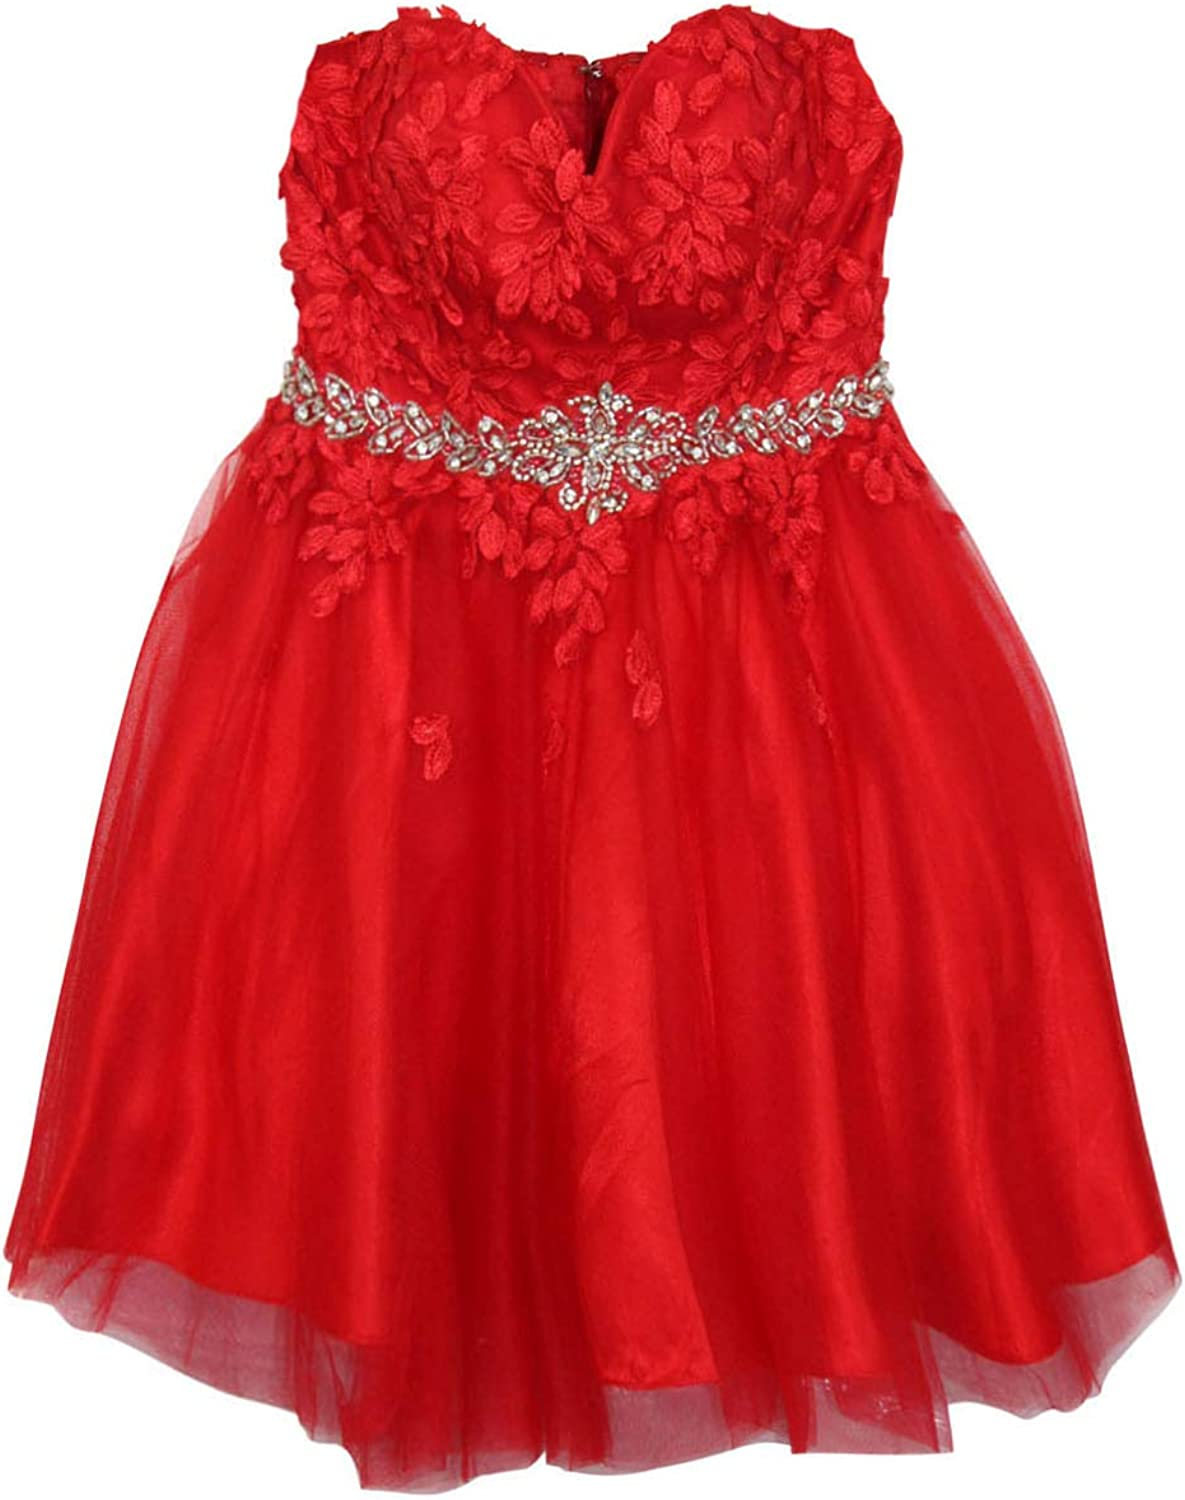 Cinderella Womens Floral Applique Sweetheart Neckline Dress Red Extra Large